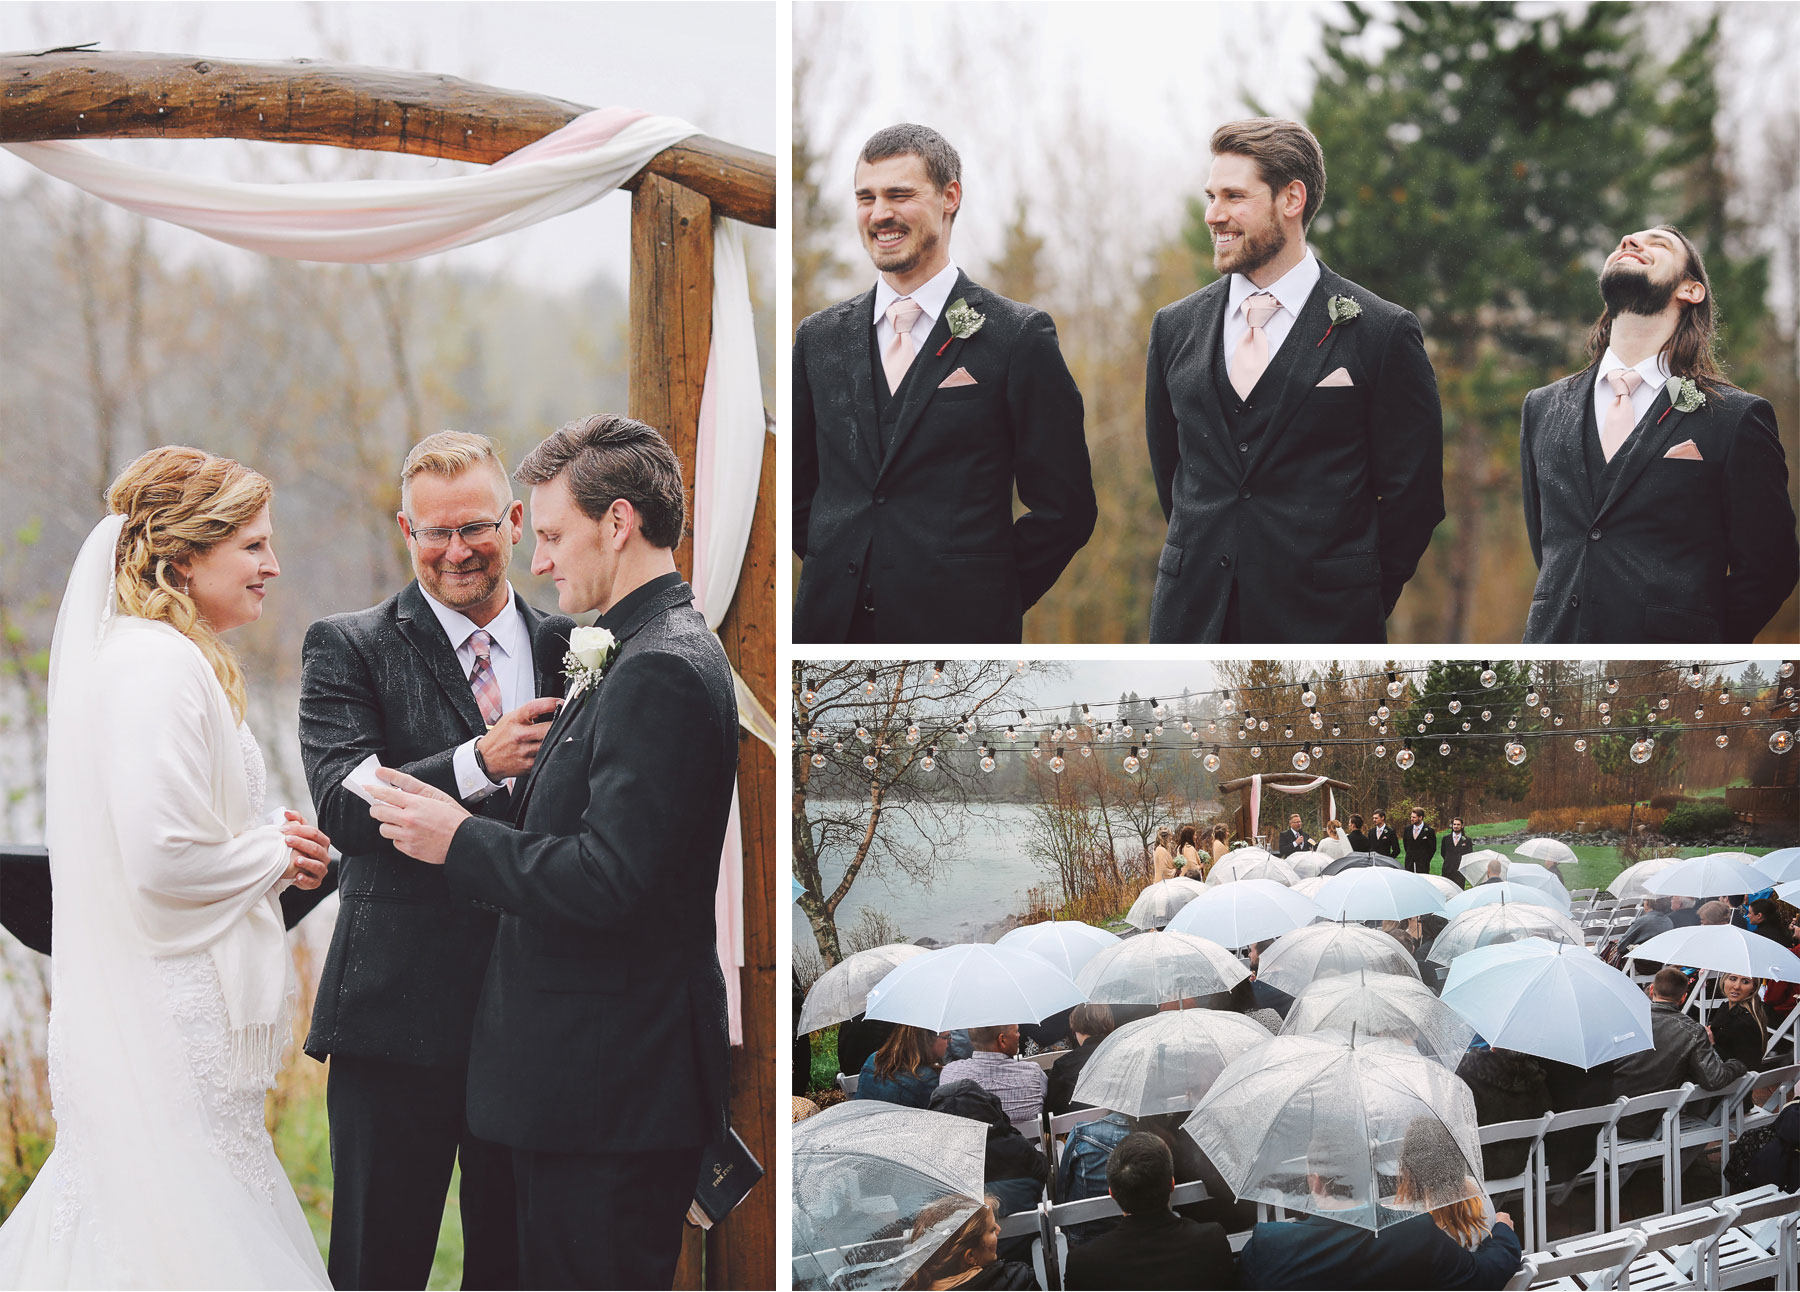 16-Minnesota-Wedding-by-Andrew-Vick-Photography-Grand-Superior-Lodge-Duluth-Two-Harbors-Outdoor-Ceremony-Rain-Umbrellas-Veronica-and-Tyler.jpg